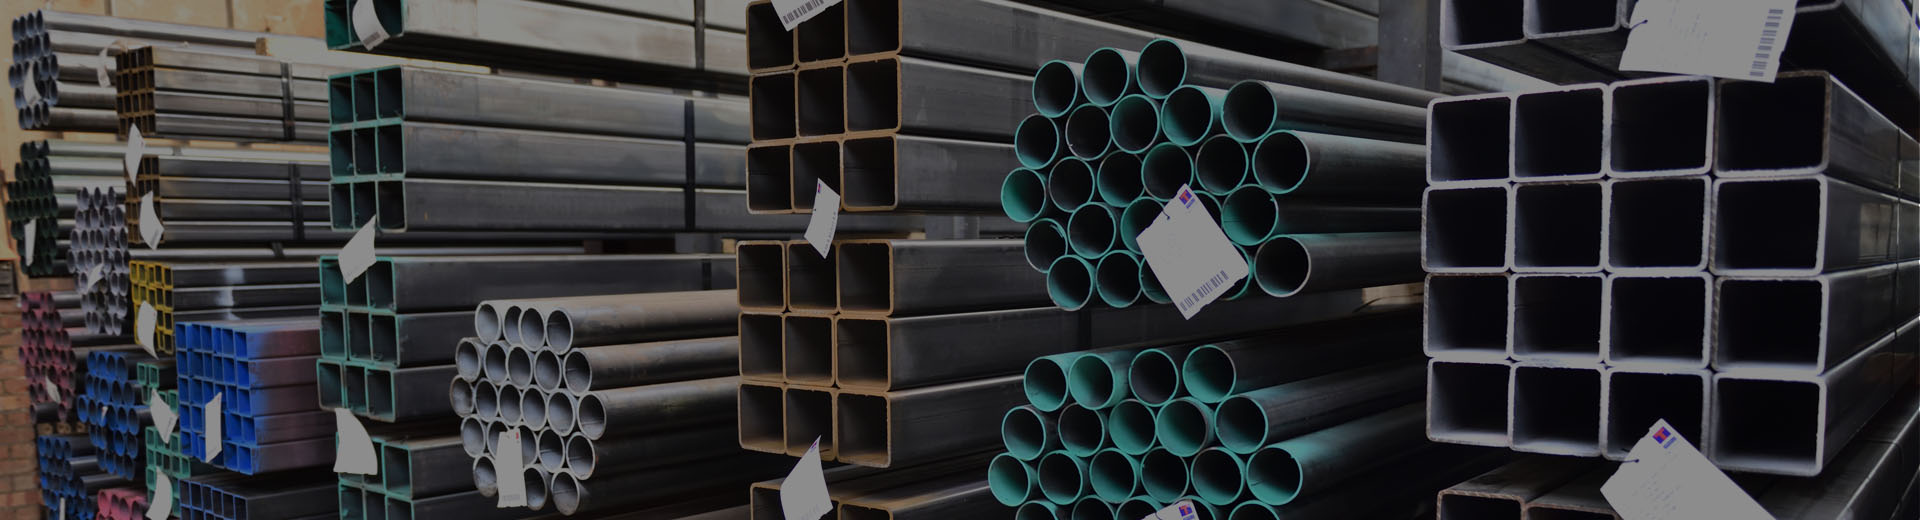 ERW Square Steel Tubes